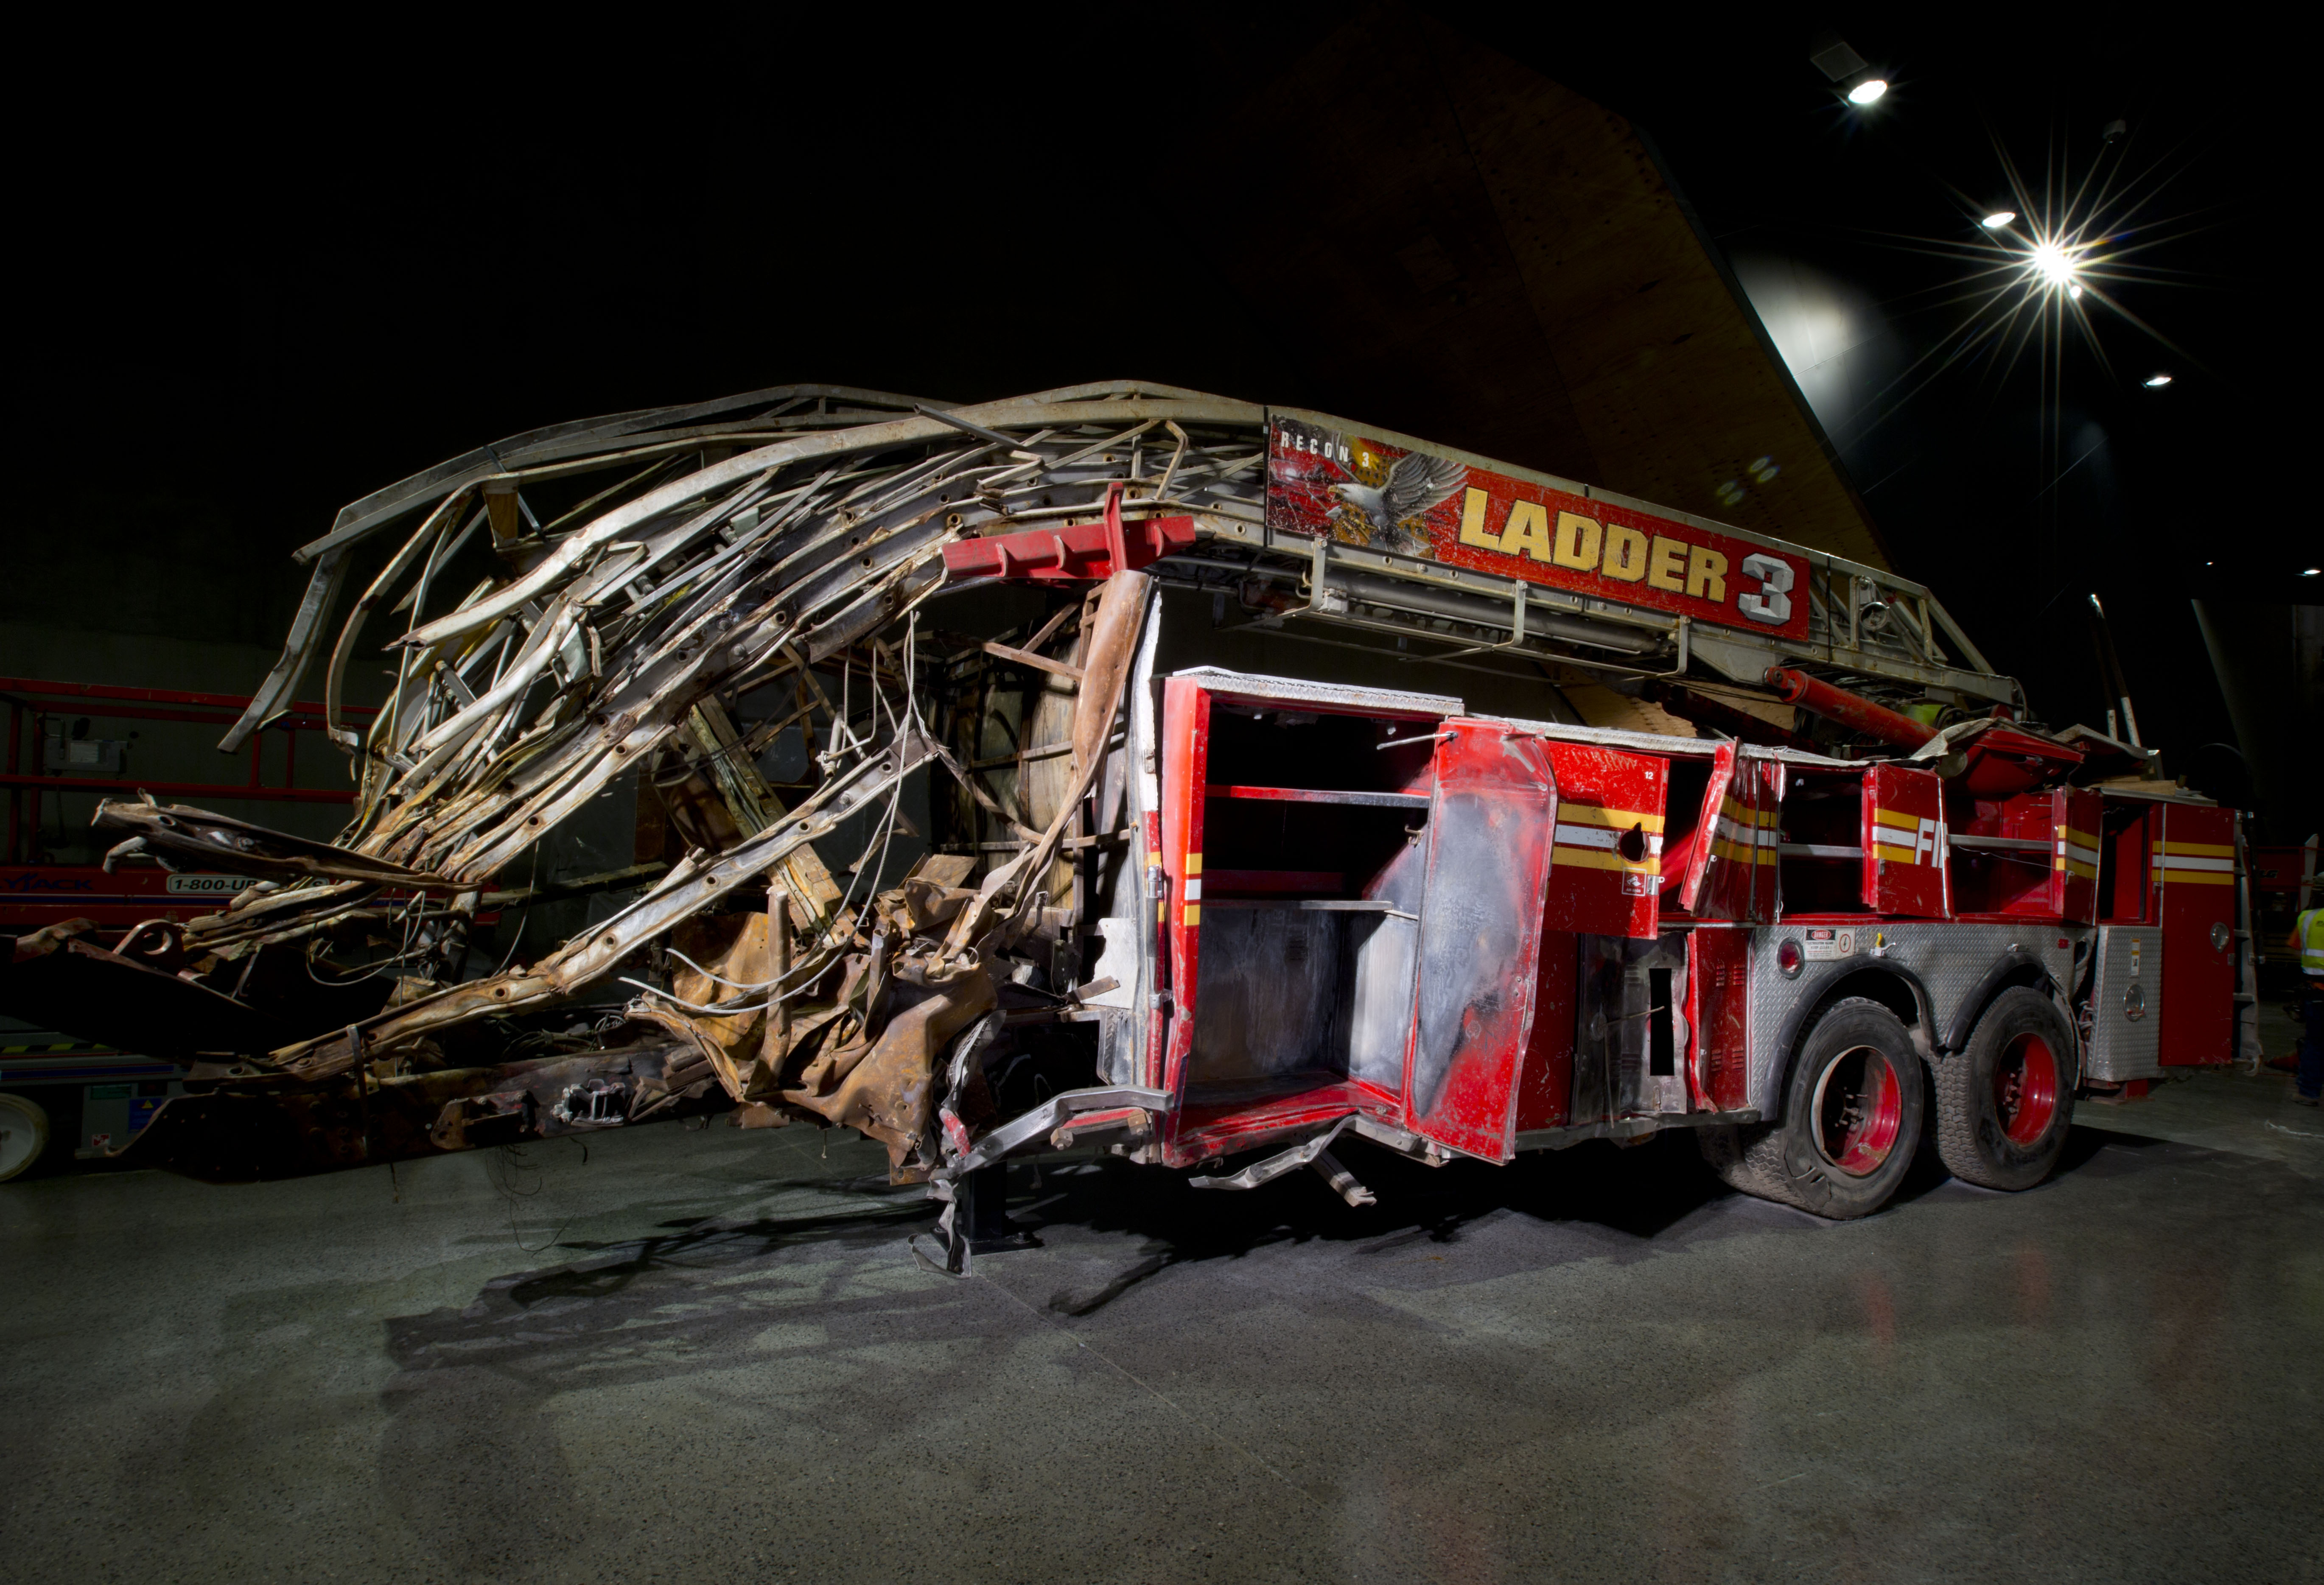 Ladder 3 of the Fire Department of New York was shredded on 9/11 when the World Trade Center collapsed. - Photo Courtesy of 9/11 Memorial & Museum